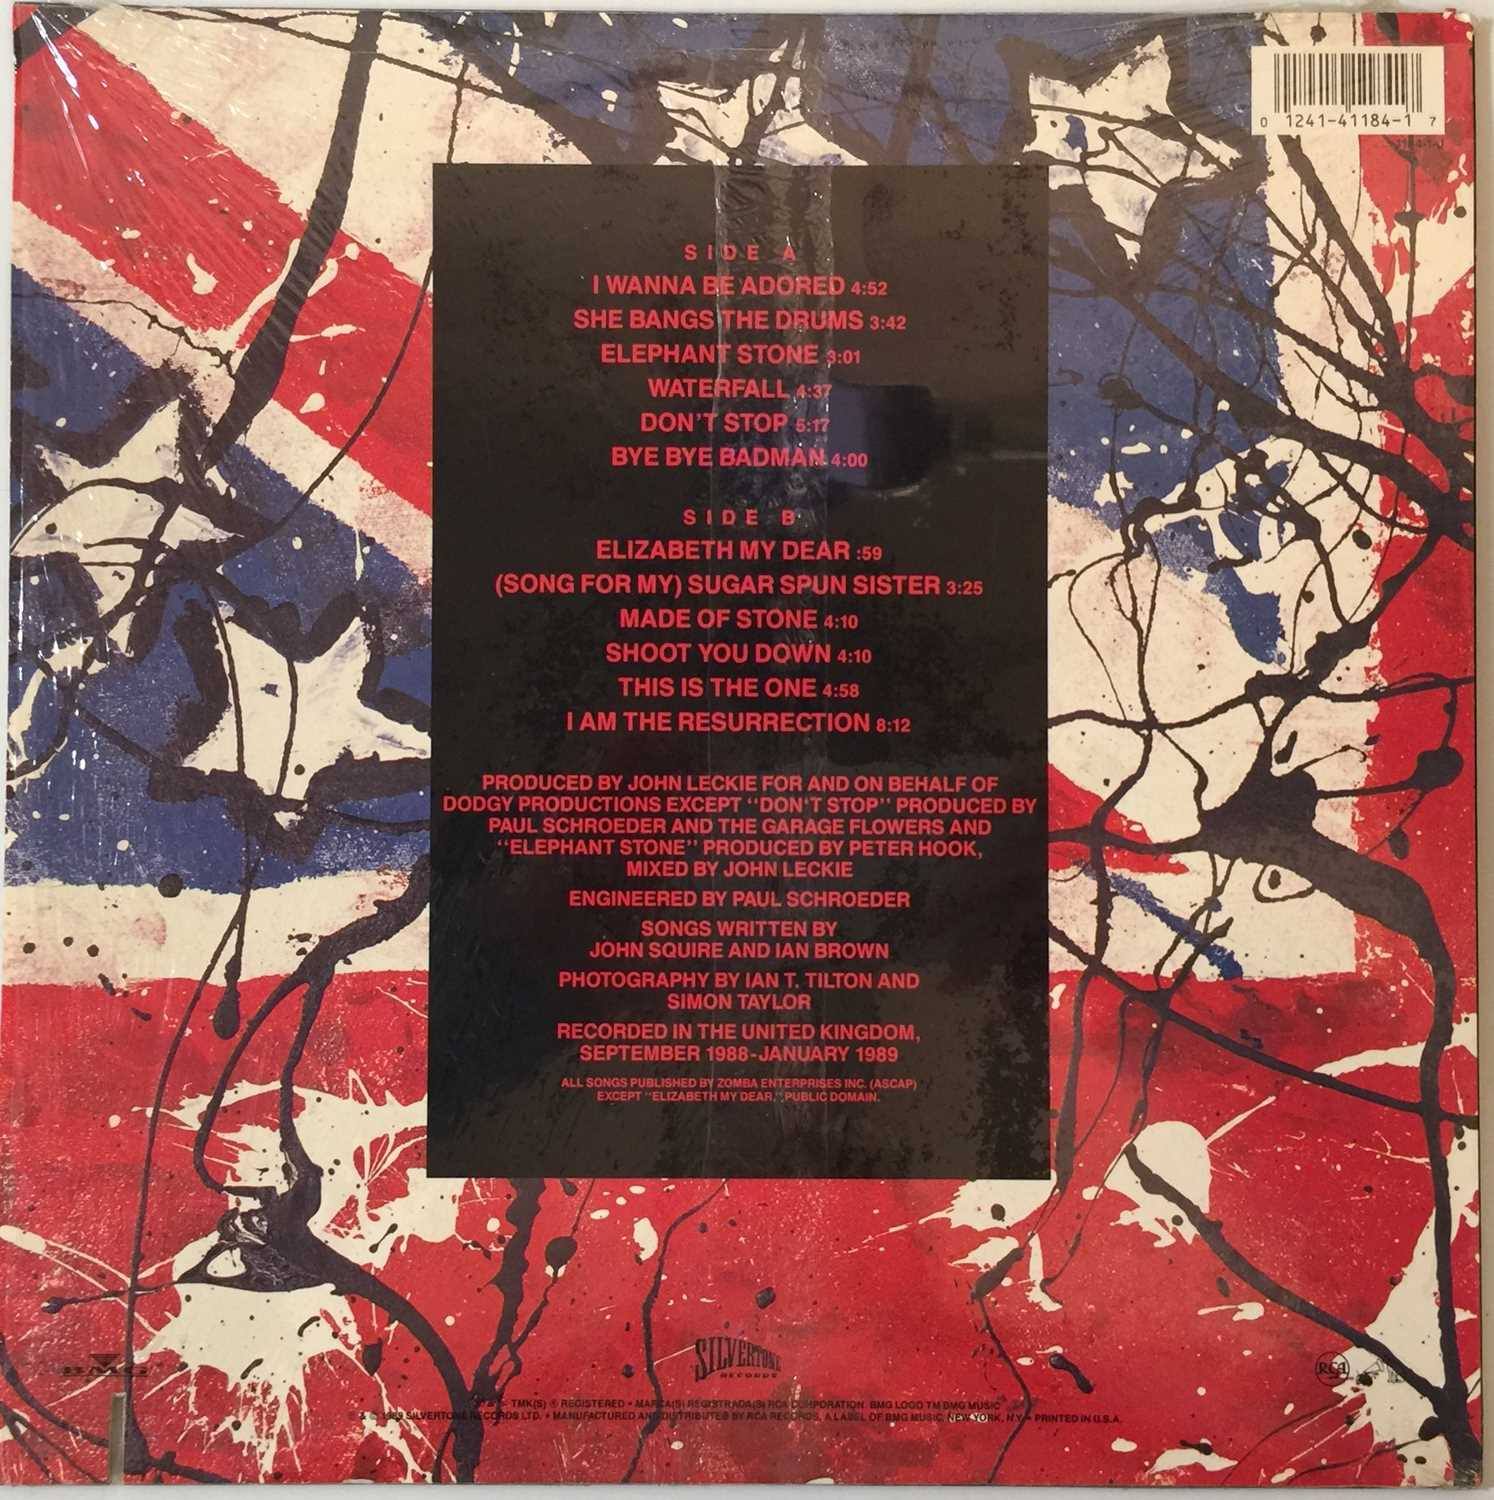 THE STONE ROSES - THE STONE ROSES LP (COMPLETE OG US COPY WITH PRESS RELEASE - SILVERTONE 1184-1-J) - Image 3 of 6